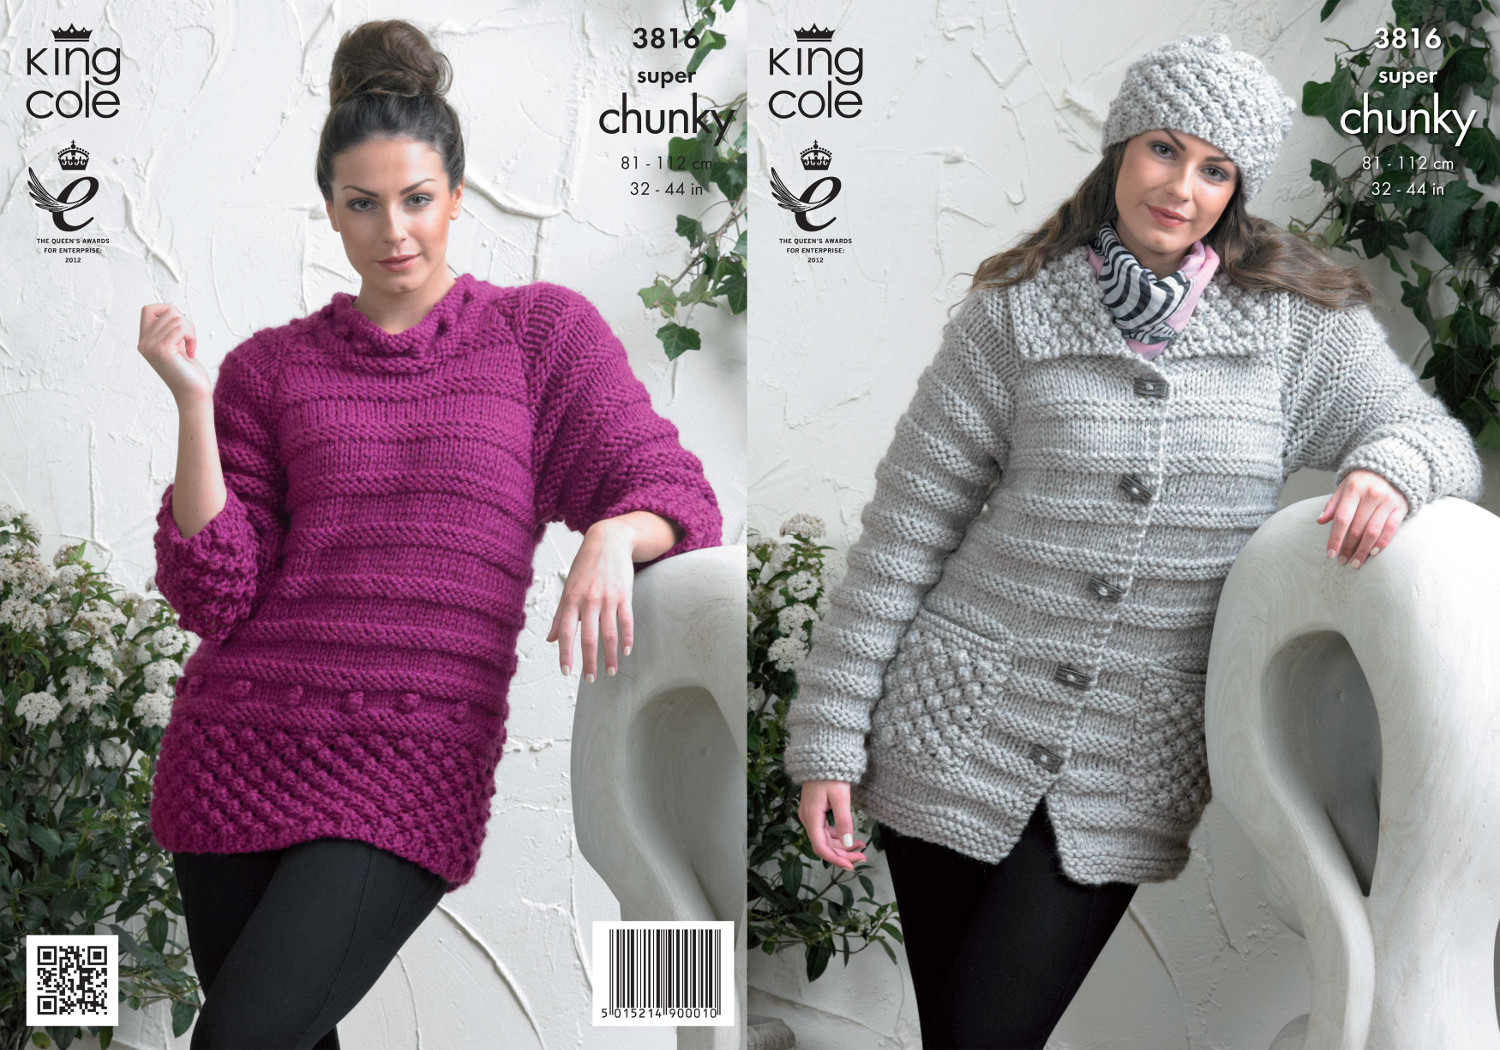 9717b8825 King Cole Ladies Knitting Pattern Womens Super Chunky Jacket Sweater Hat  3816